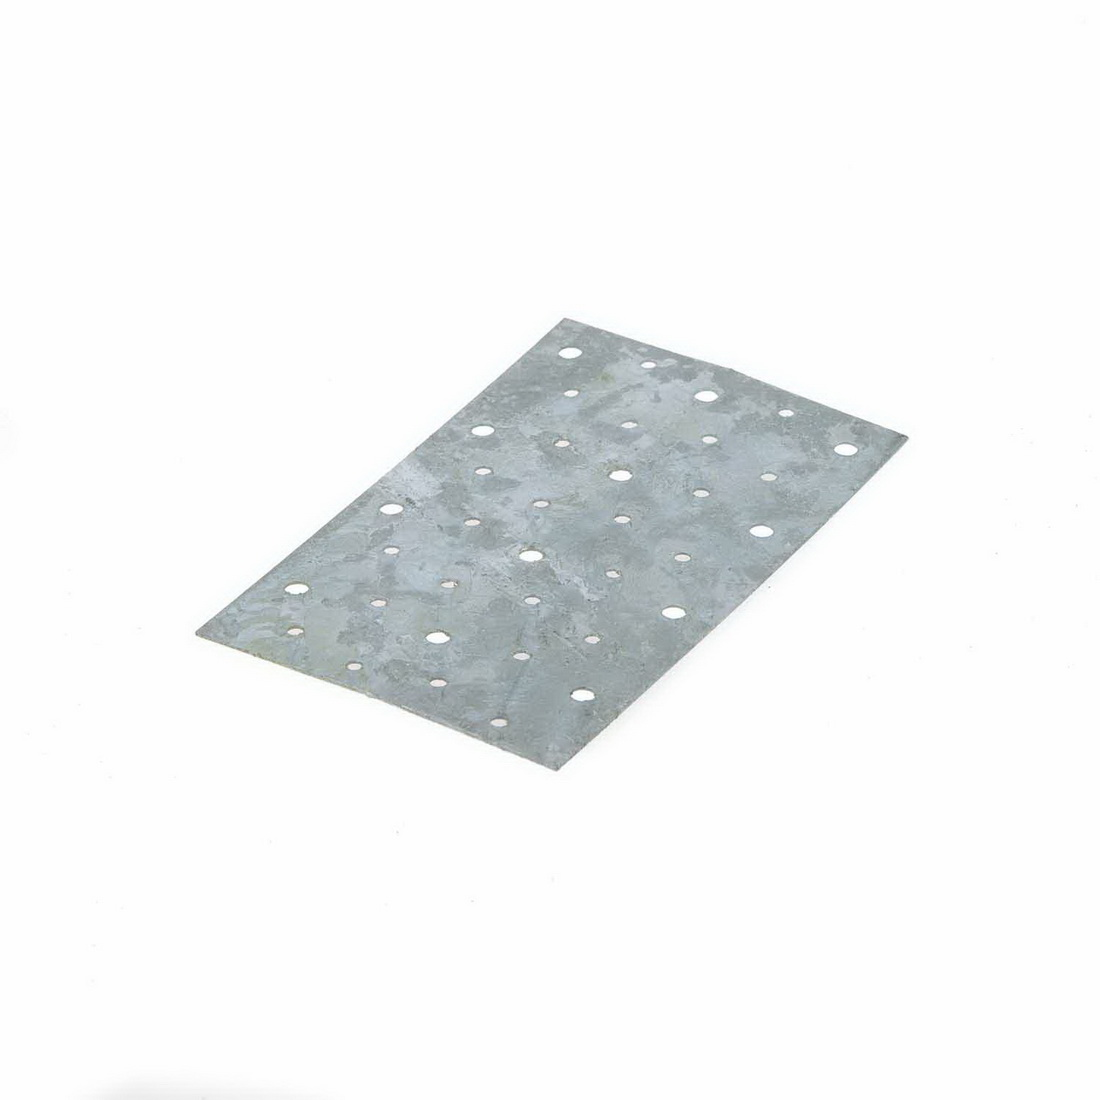 1 x 110 x 200mm Nailon Plates Hot Dip Galvanised